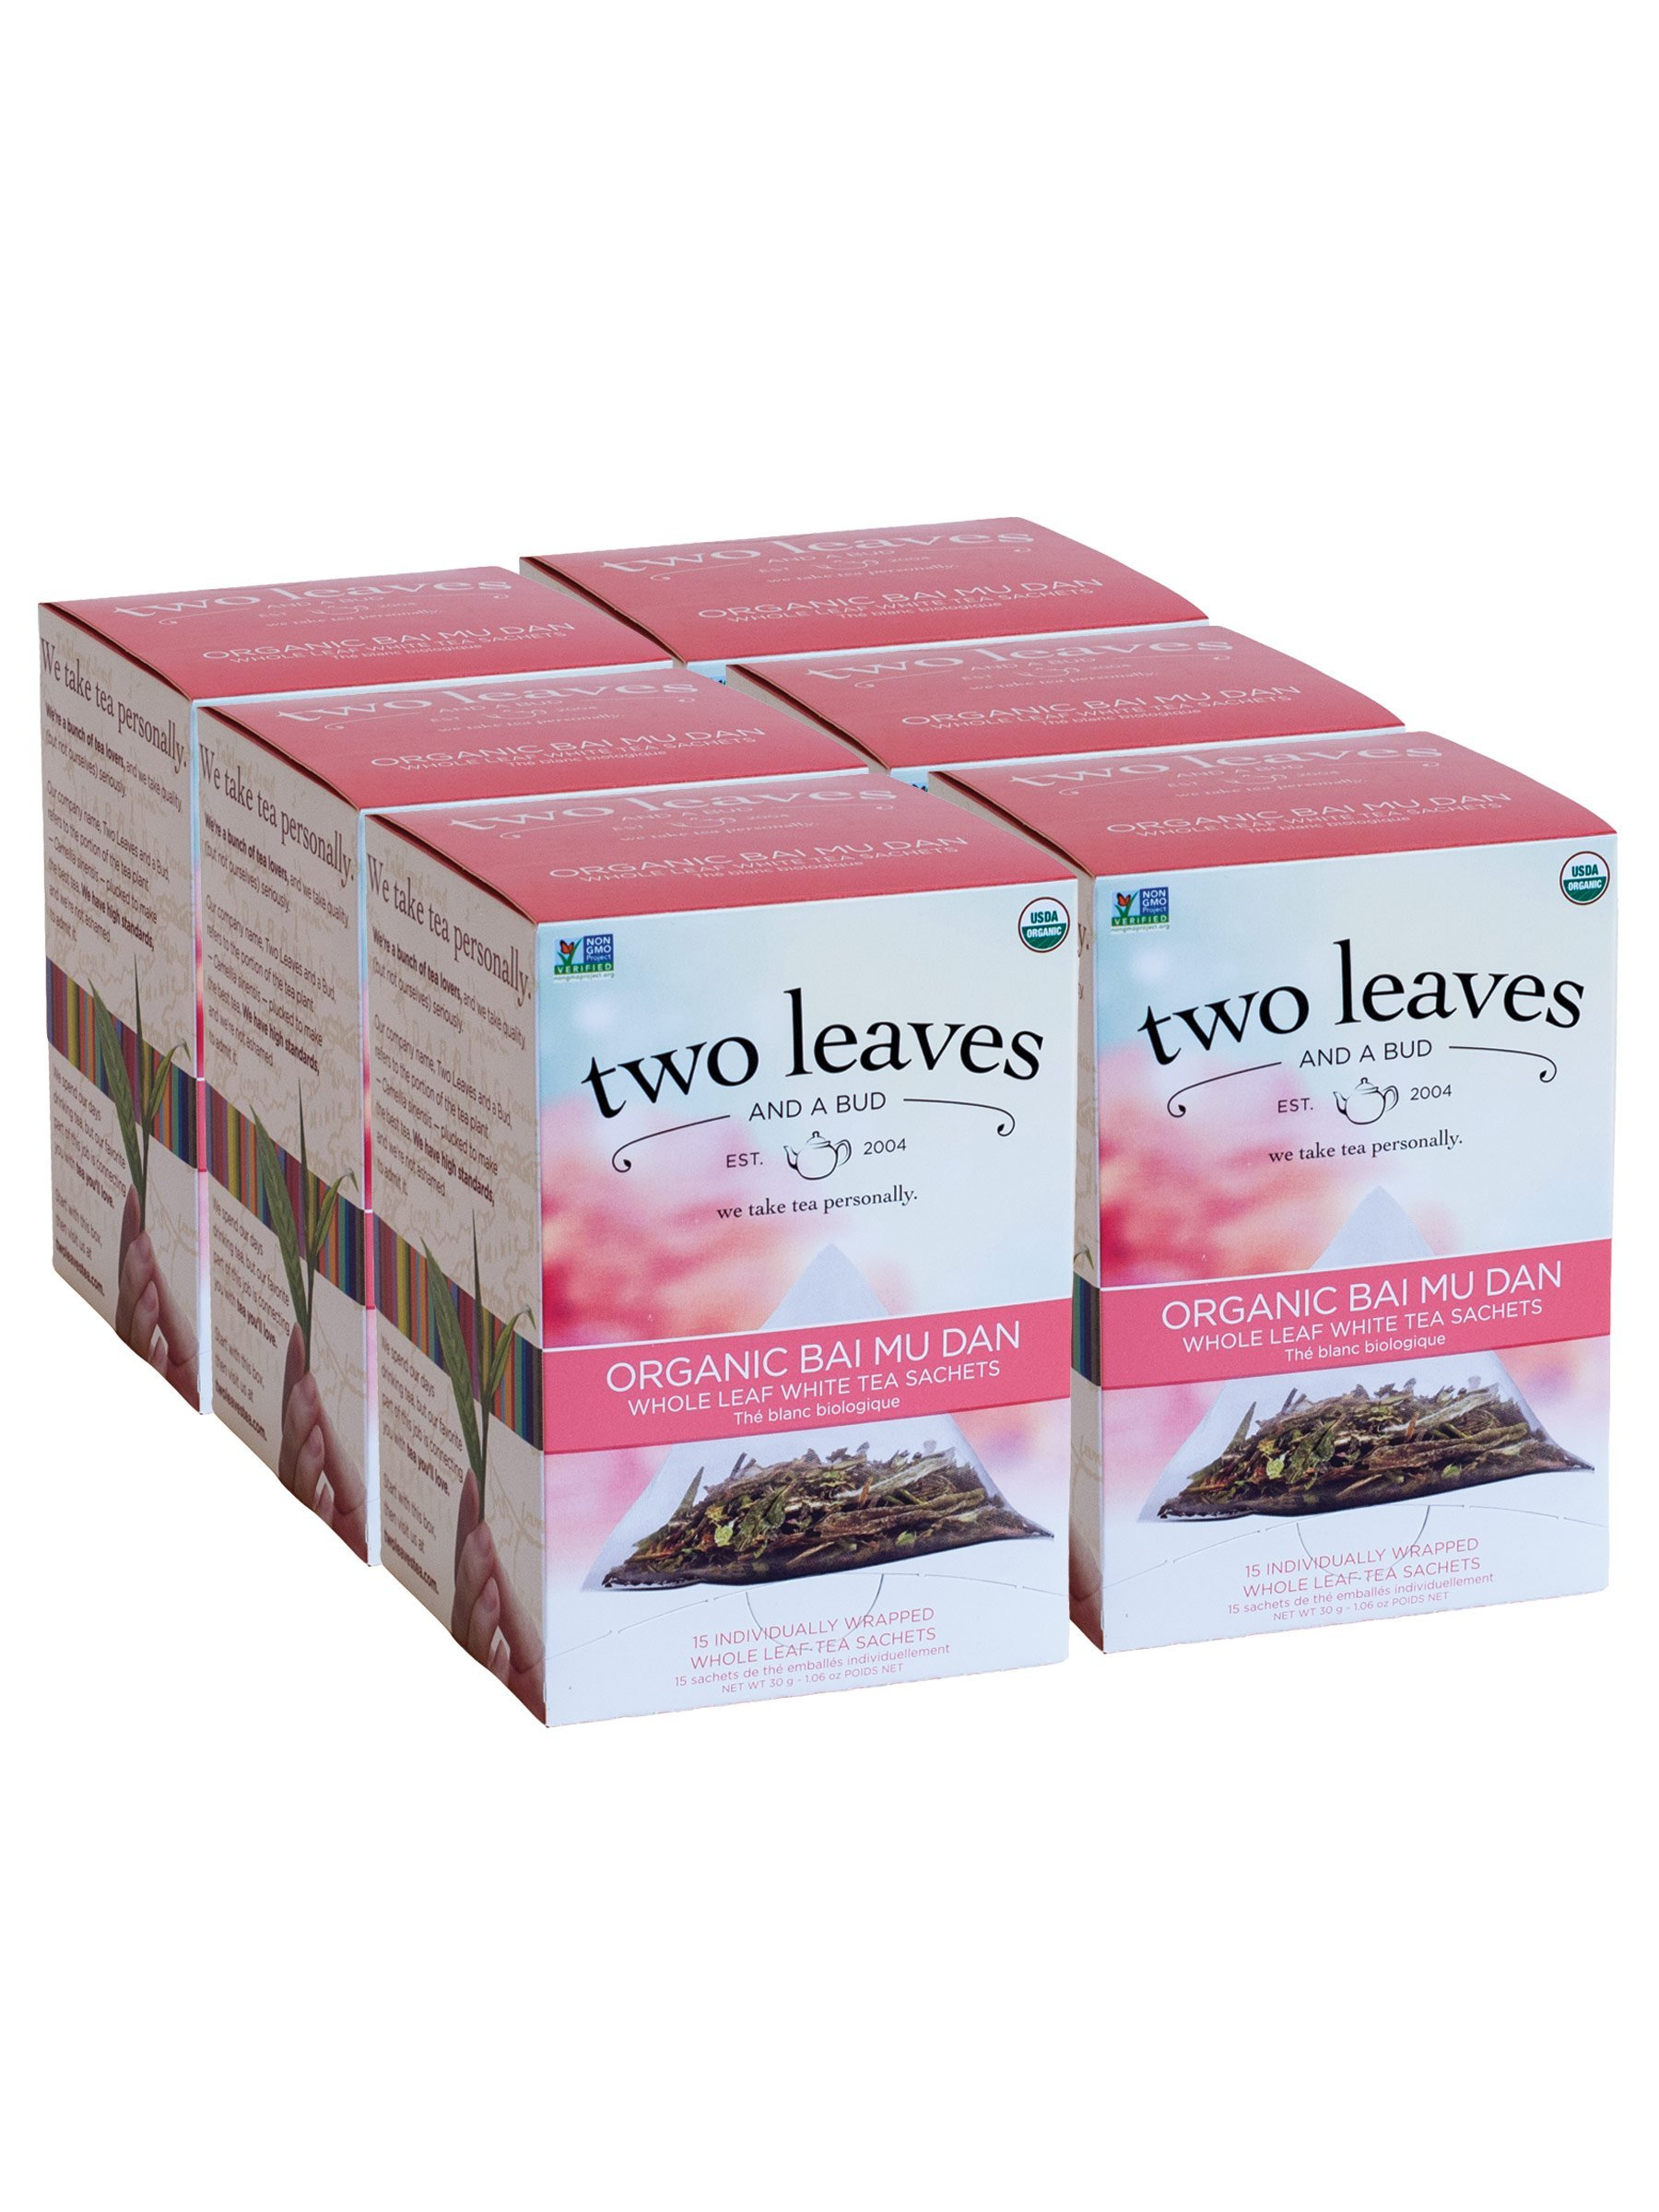 Two Leaves and a Bud Organic Bai Mu Dan White Tea Bags, 15 Count (Pack of 6) Organic Whole Leaf White Tea in Pyramid Sachet Bags, Delicious Hot or Iced with Milk or Sugar or Honey or Plain by Two Leaves and a Bud